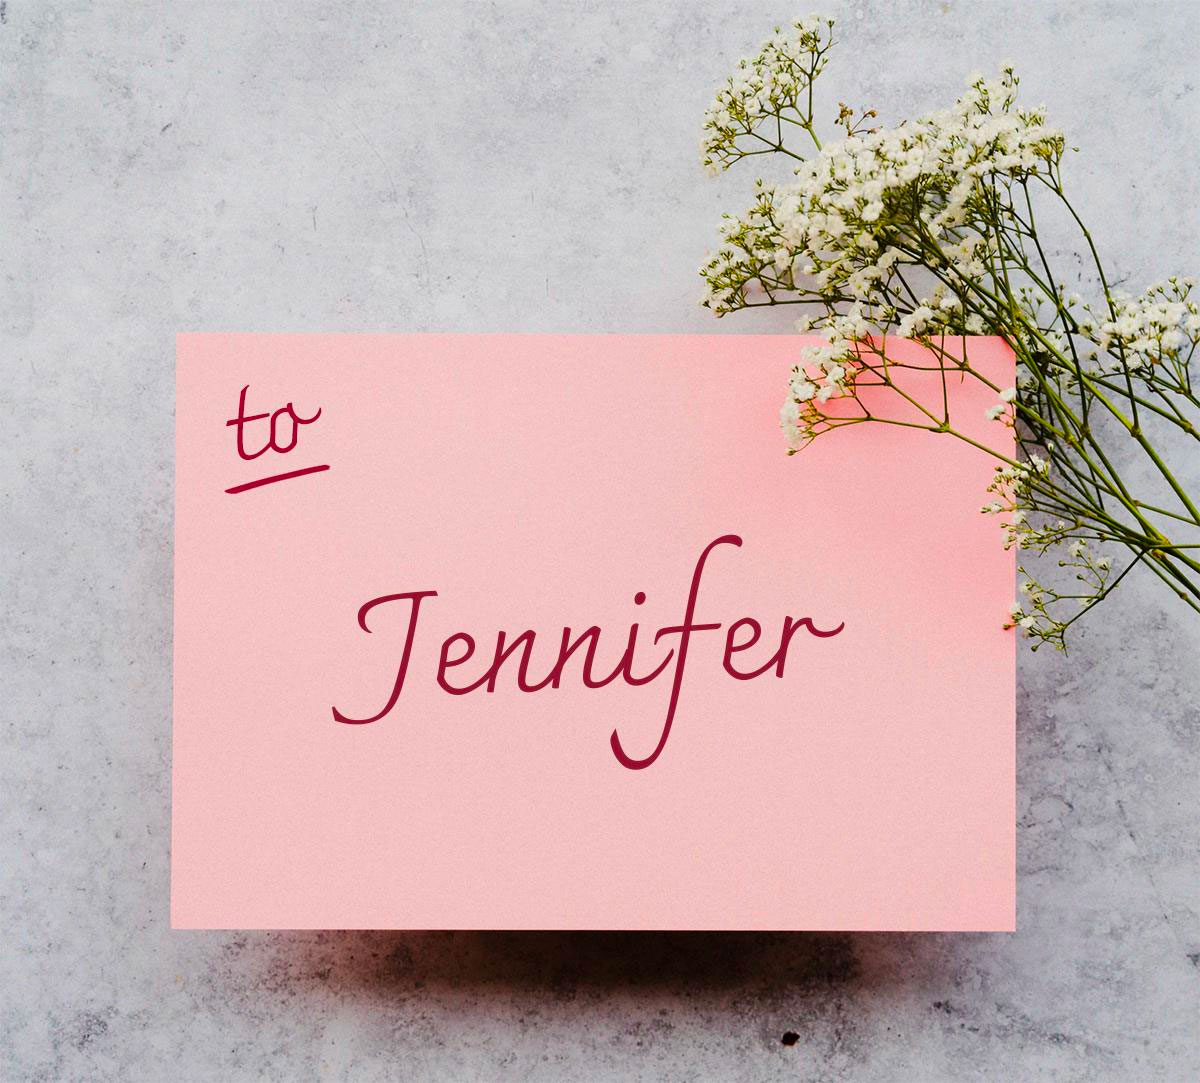 Image of a greeting card personalised with a customer name